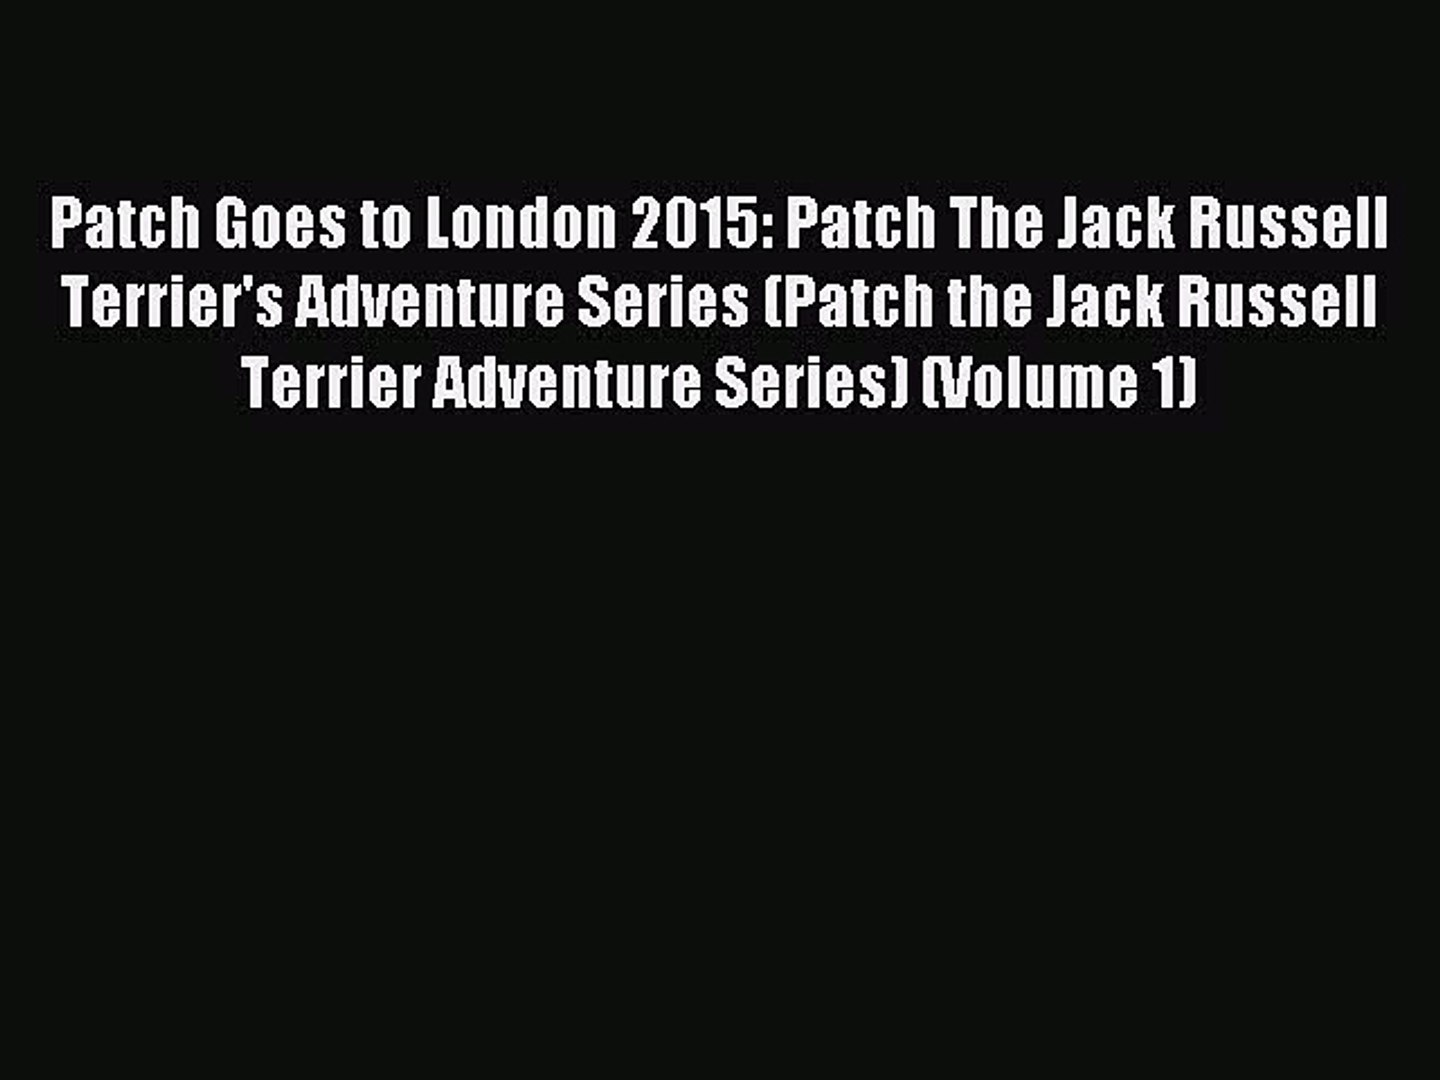 Read Patch Goes to London 2015: Patch The Jack Russell Terrier's Adventure Series (Patch the